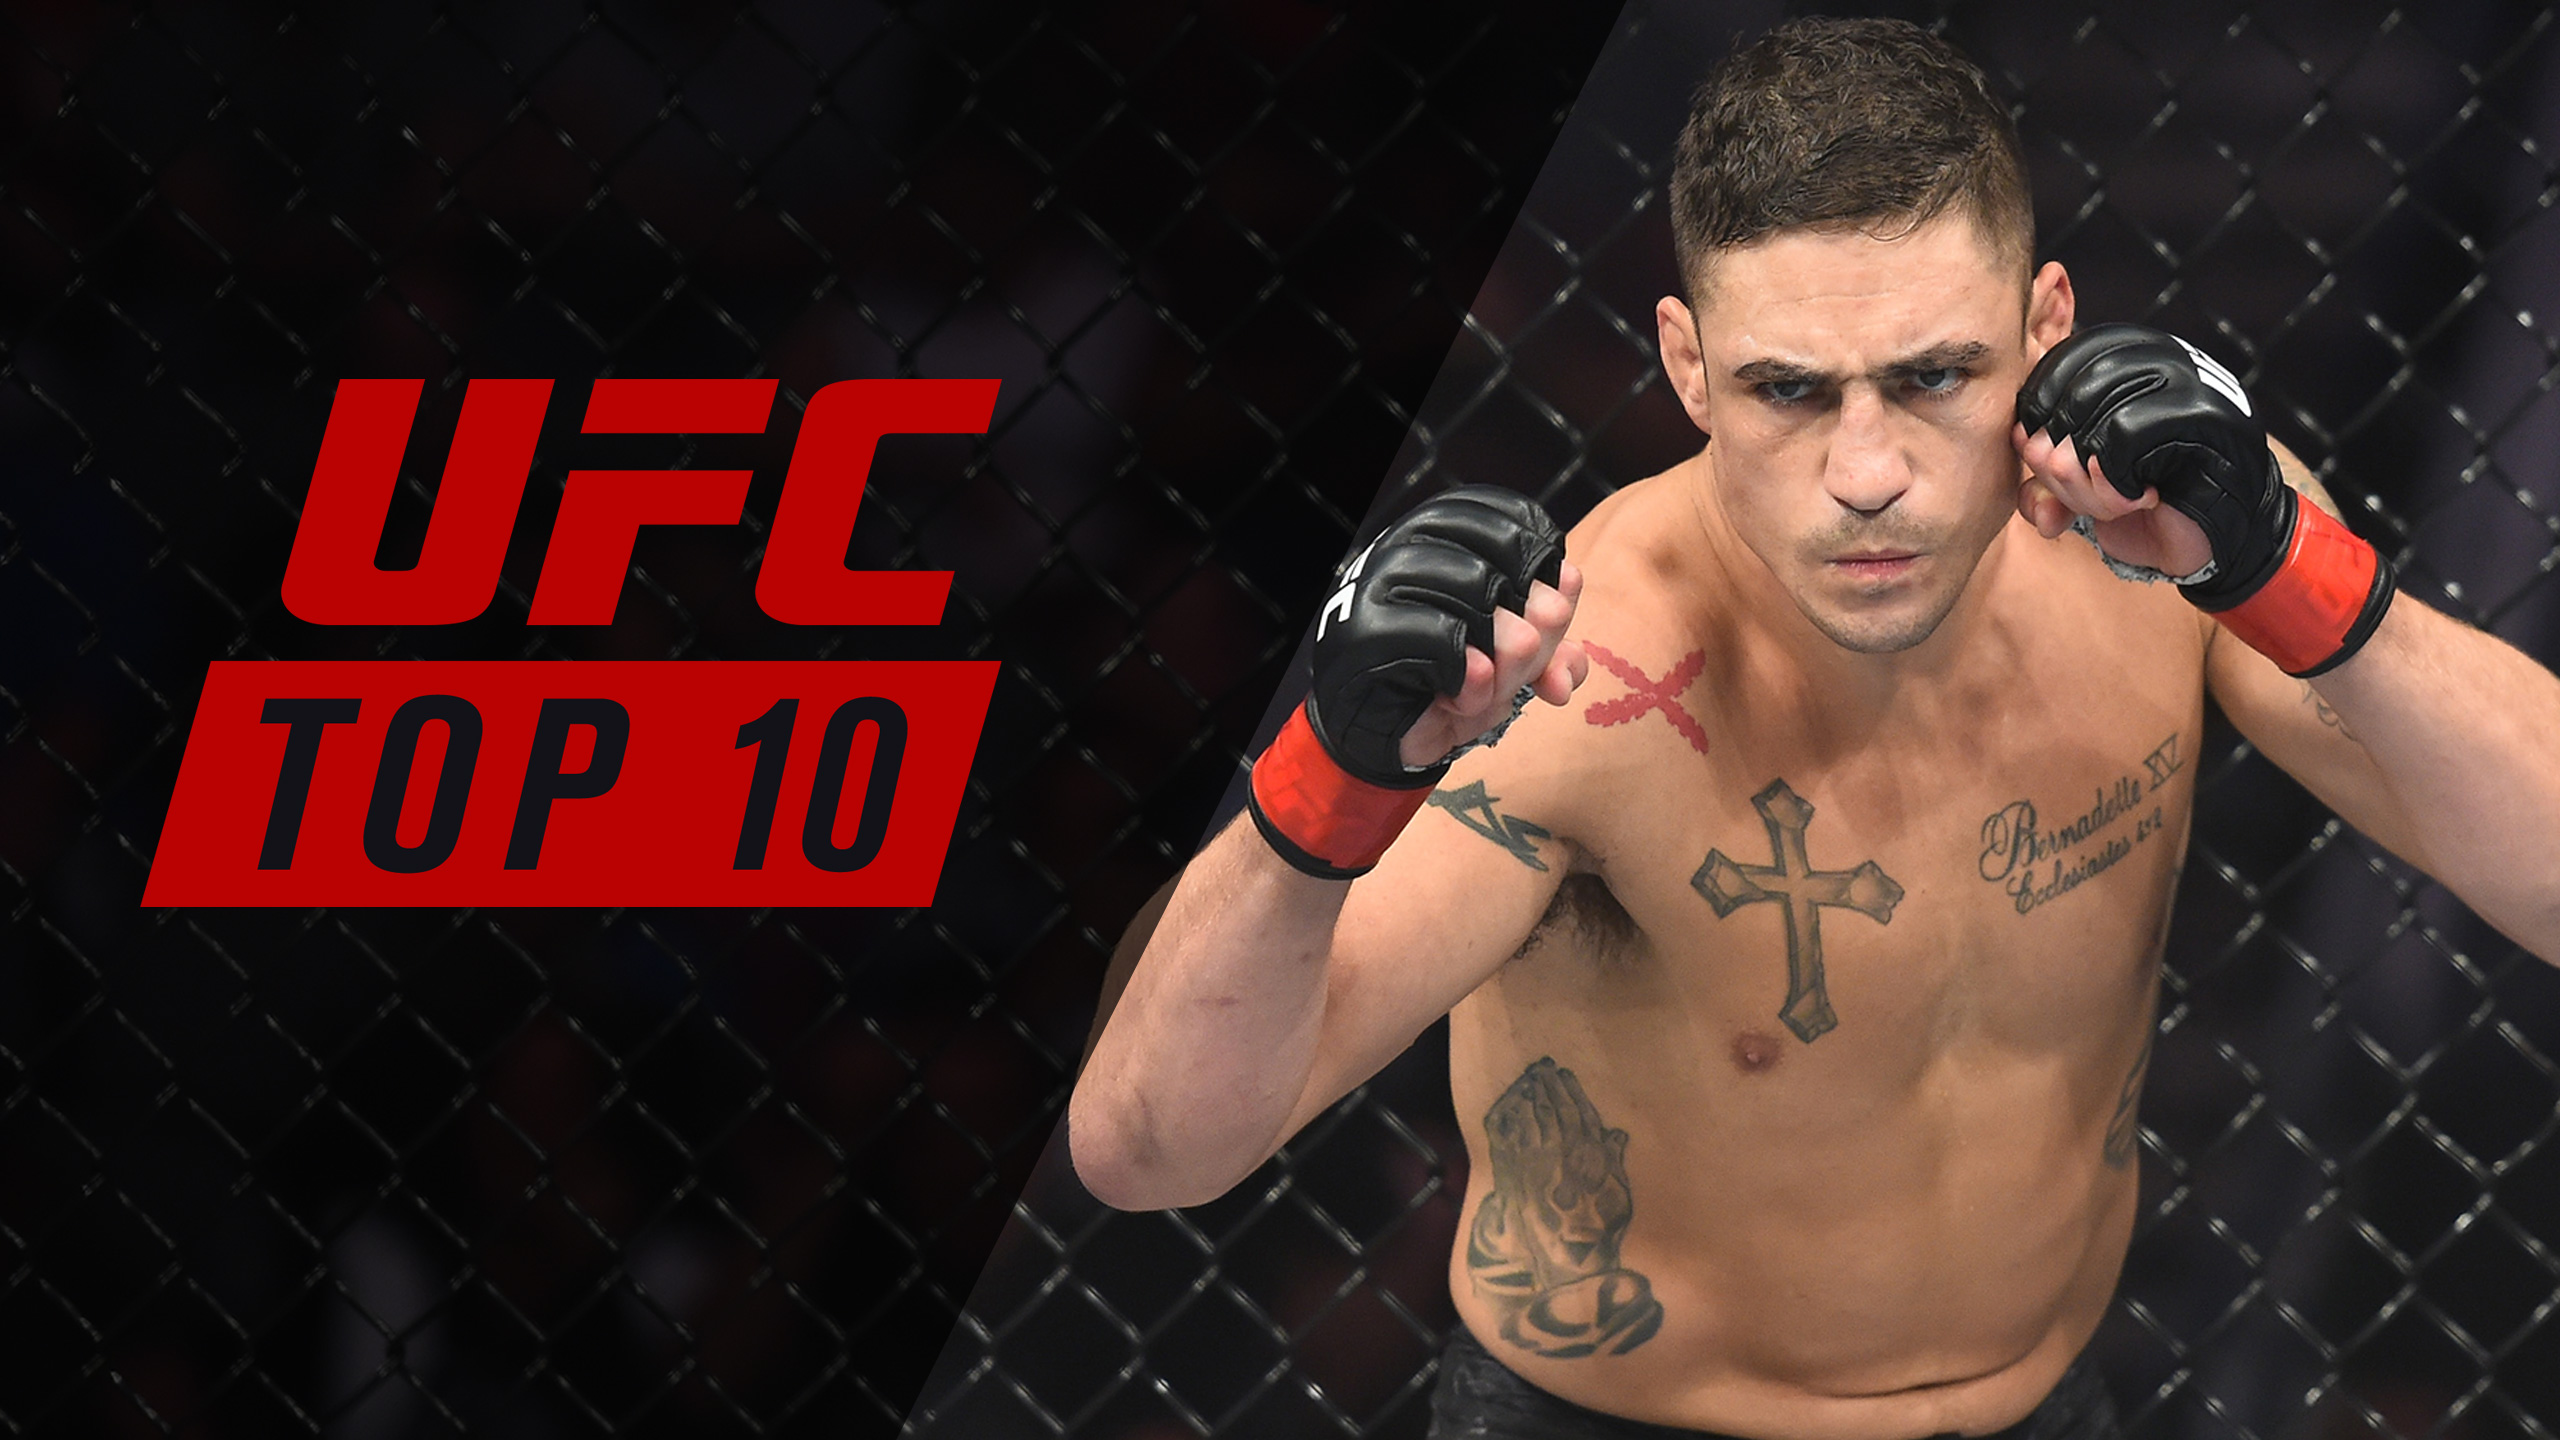 UFC Top 10: The Ultimate Fighter Alumni